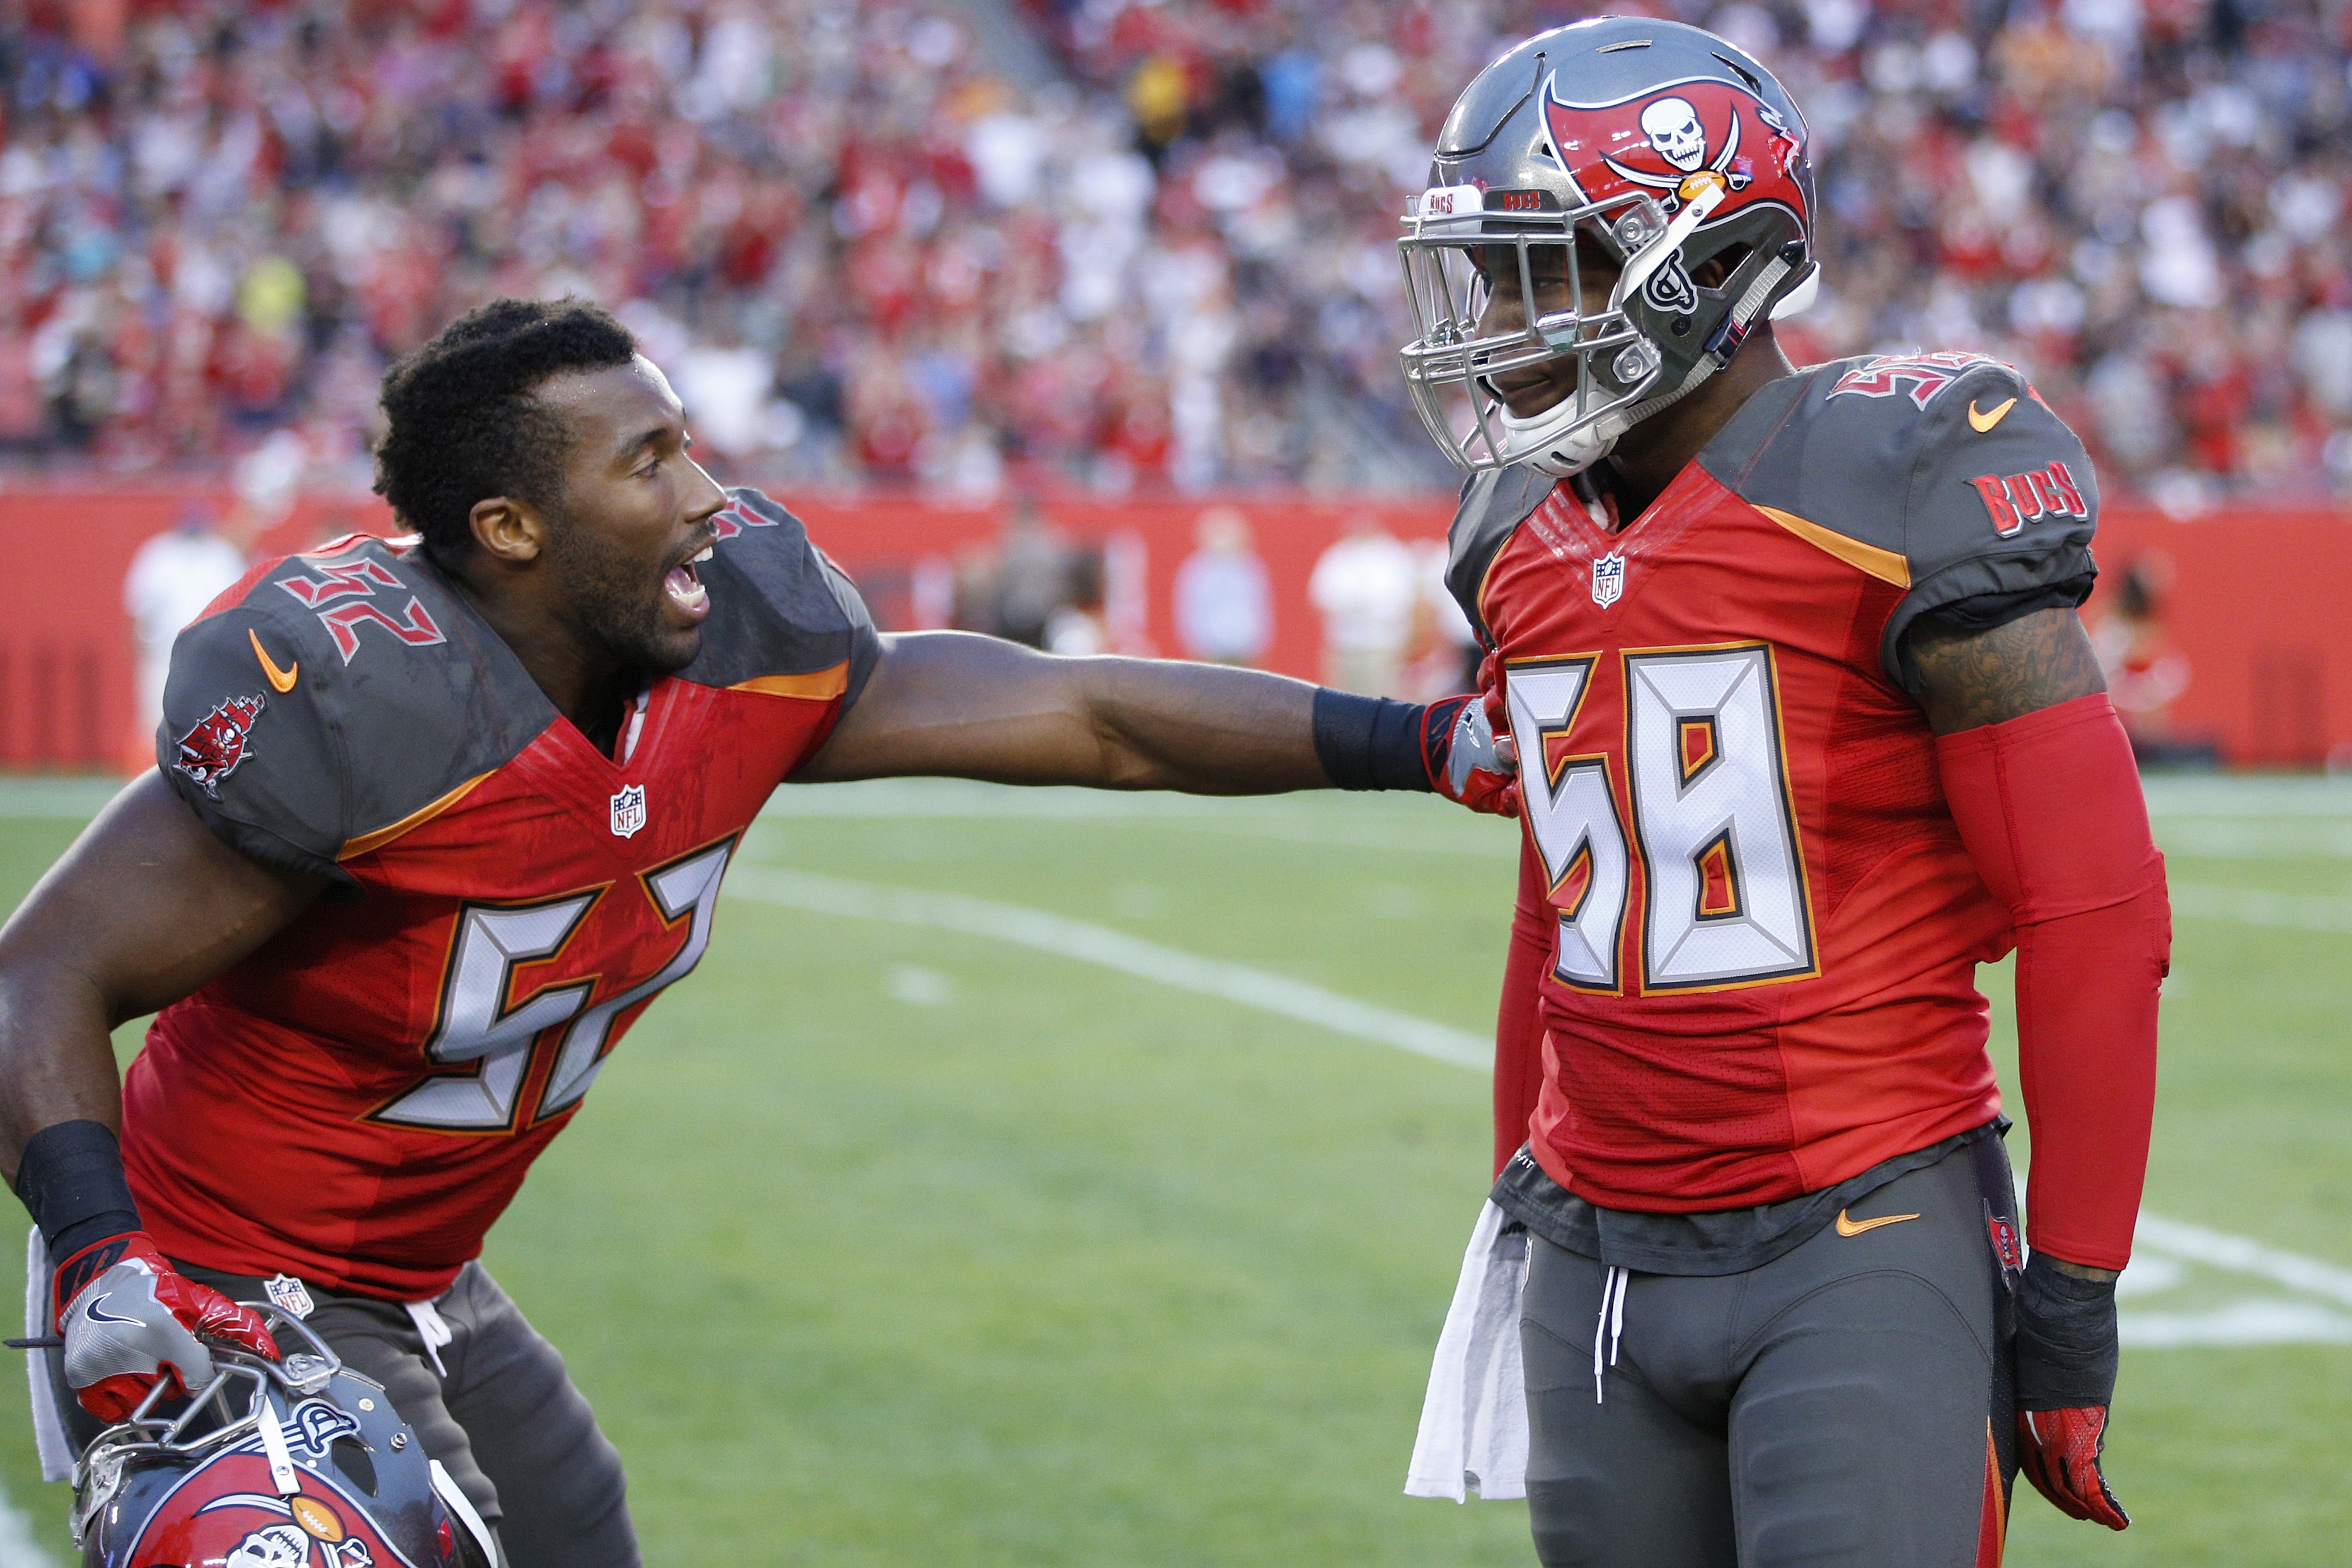 f56ec072 ... Buccaneers TAMPA, FL – DECEMBER 11 Kwon Alexander 58 and Cameron Lynch  52 of the Tampa ...